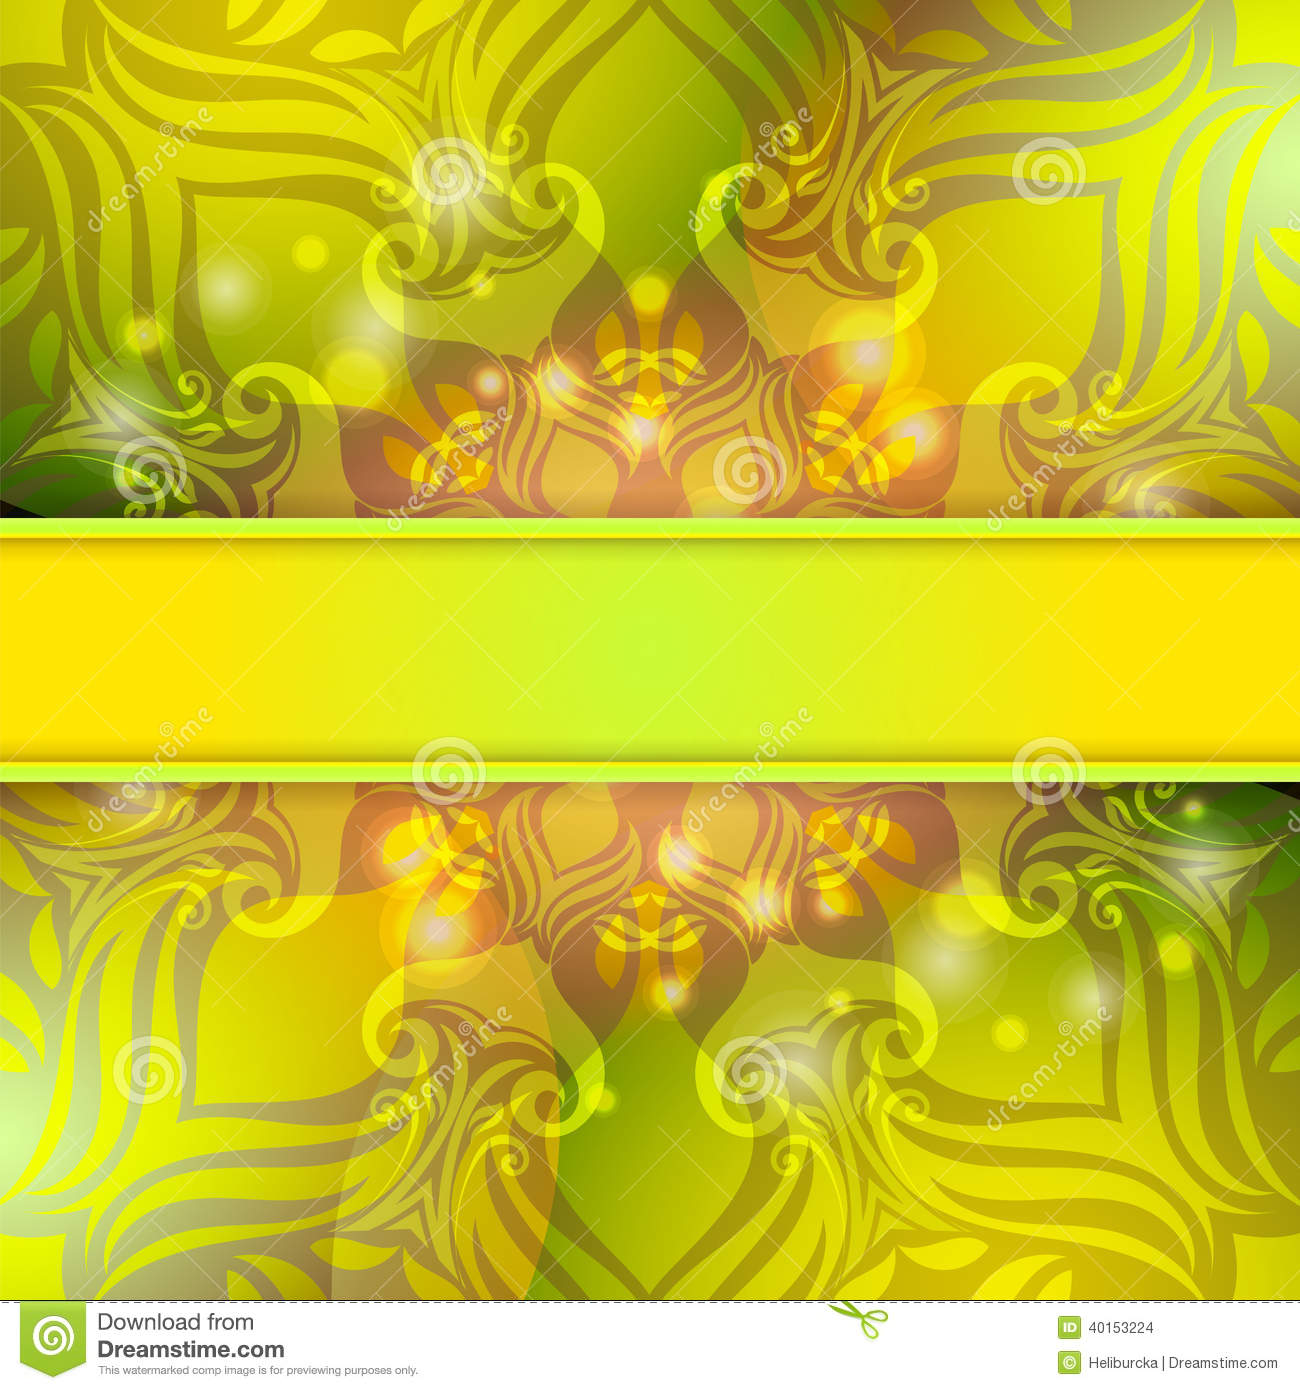 Green Vintage Vector Abstract Background Stock Vector - Illustration ...